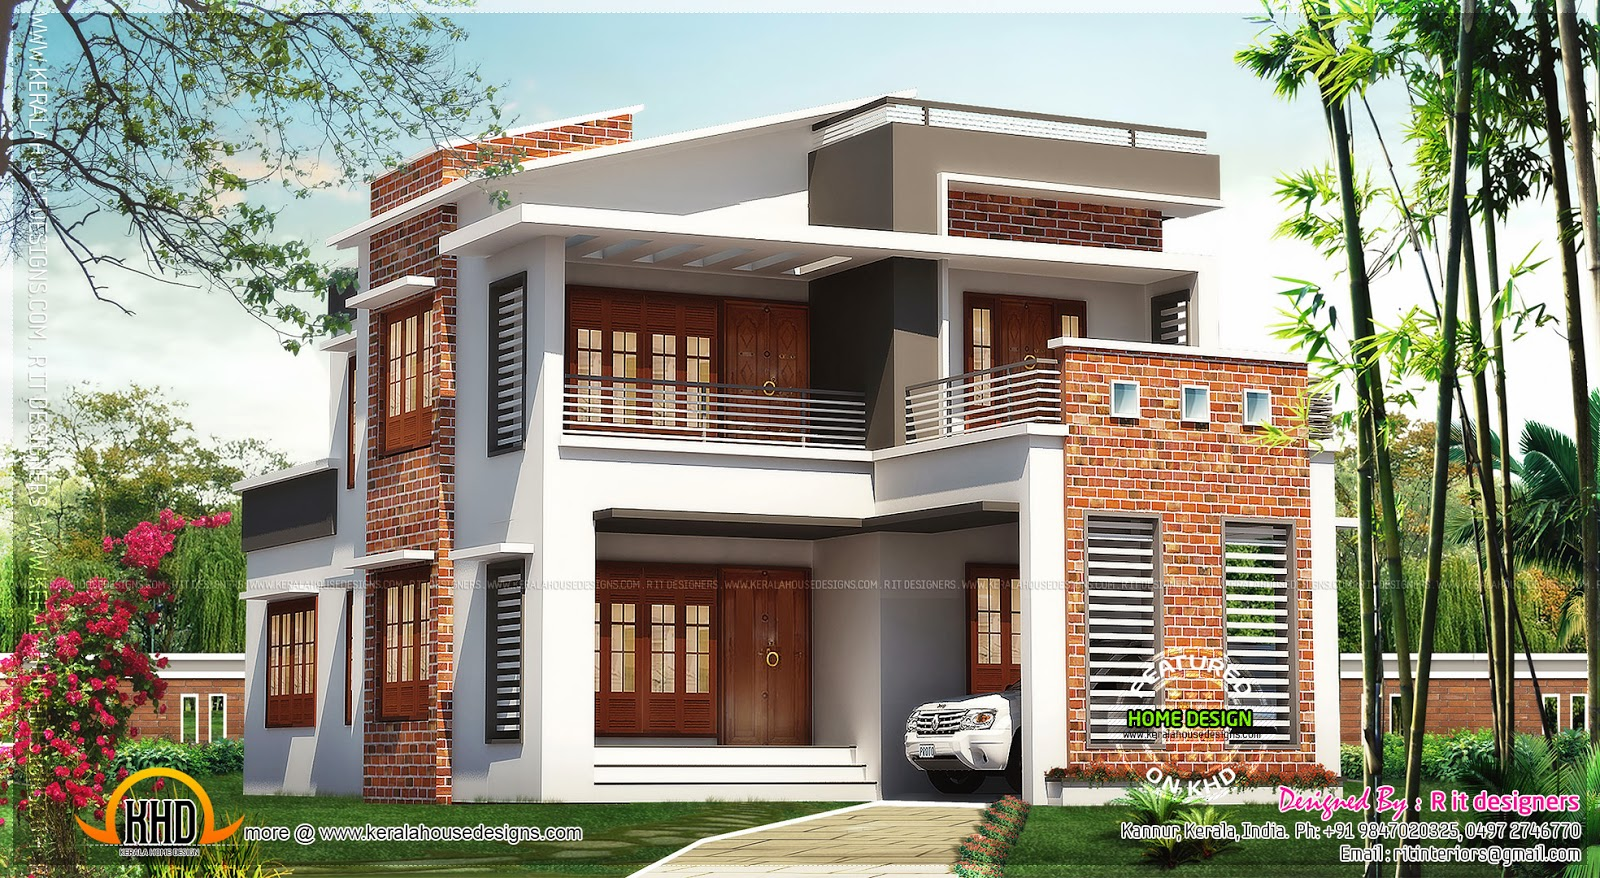 Brick mix house exterior design kerala home design and for Best exterior home designs in india